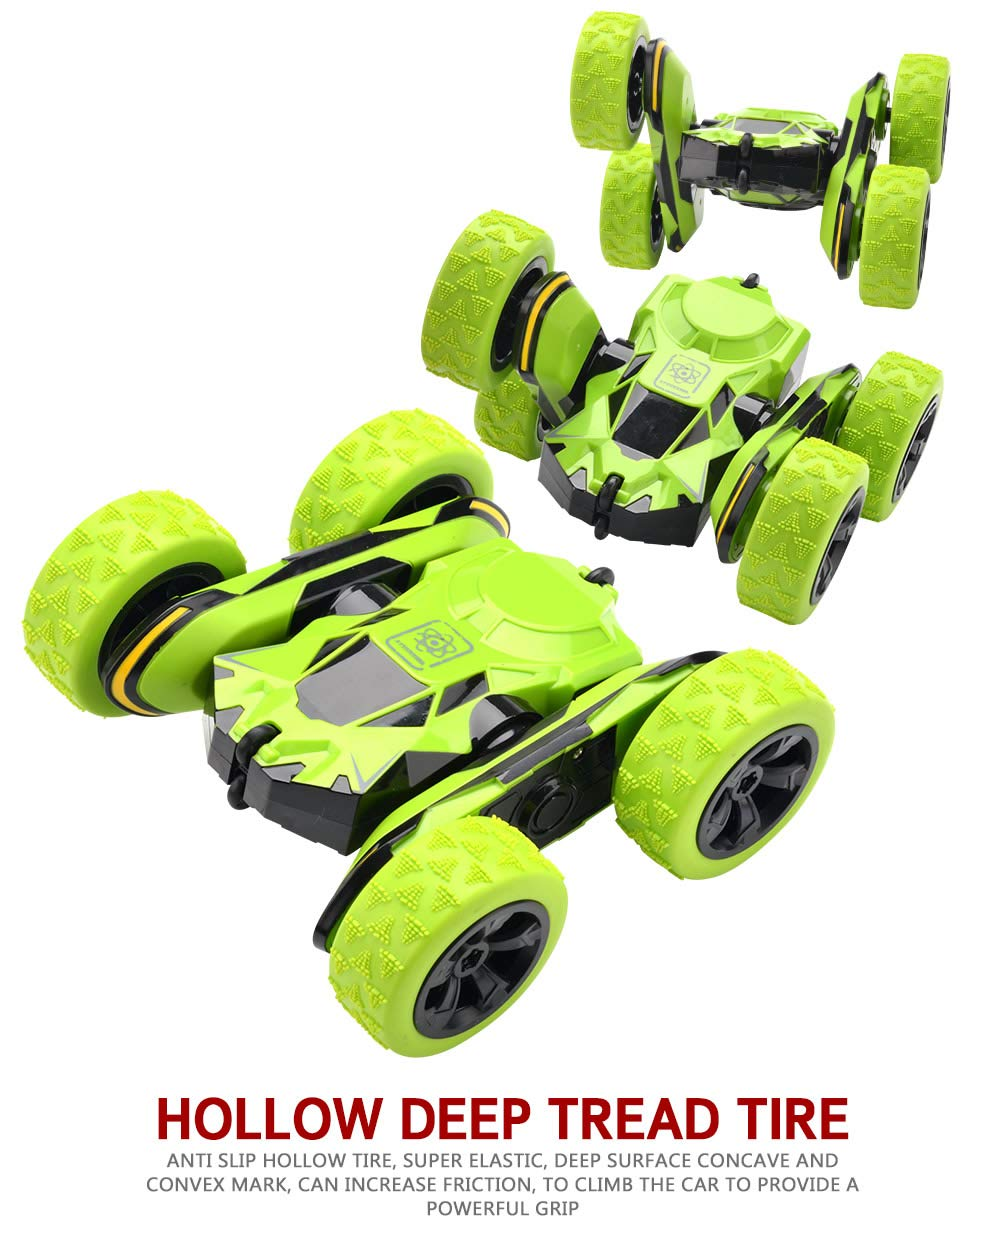 Threeking Rc Stunt Car Remote Control Off-Road Truck Double Sided Tumbling 360 Degree Rotation 3D Deformation Dance Car 1:28 2.4Ghz Rechargeable Stunt Car Great Gift for Kids - Green by Threeking (Image #4)